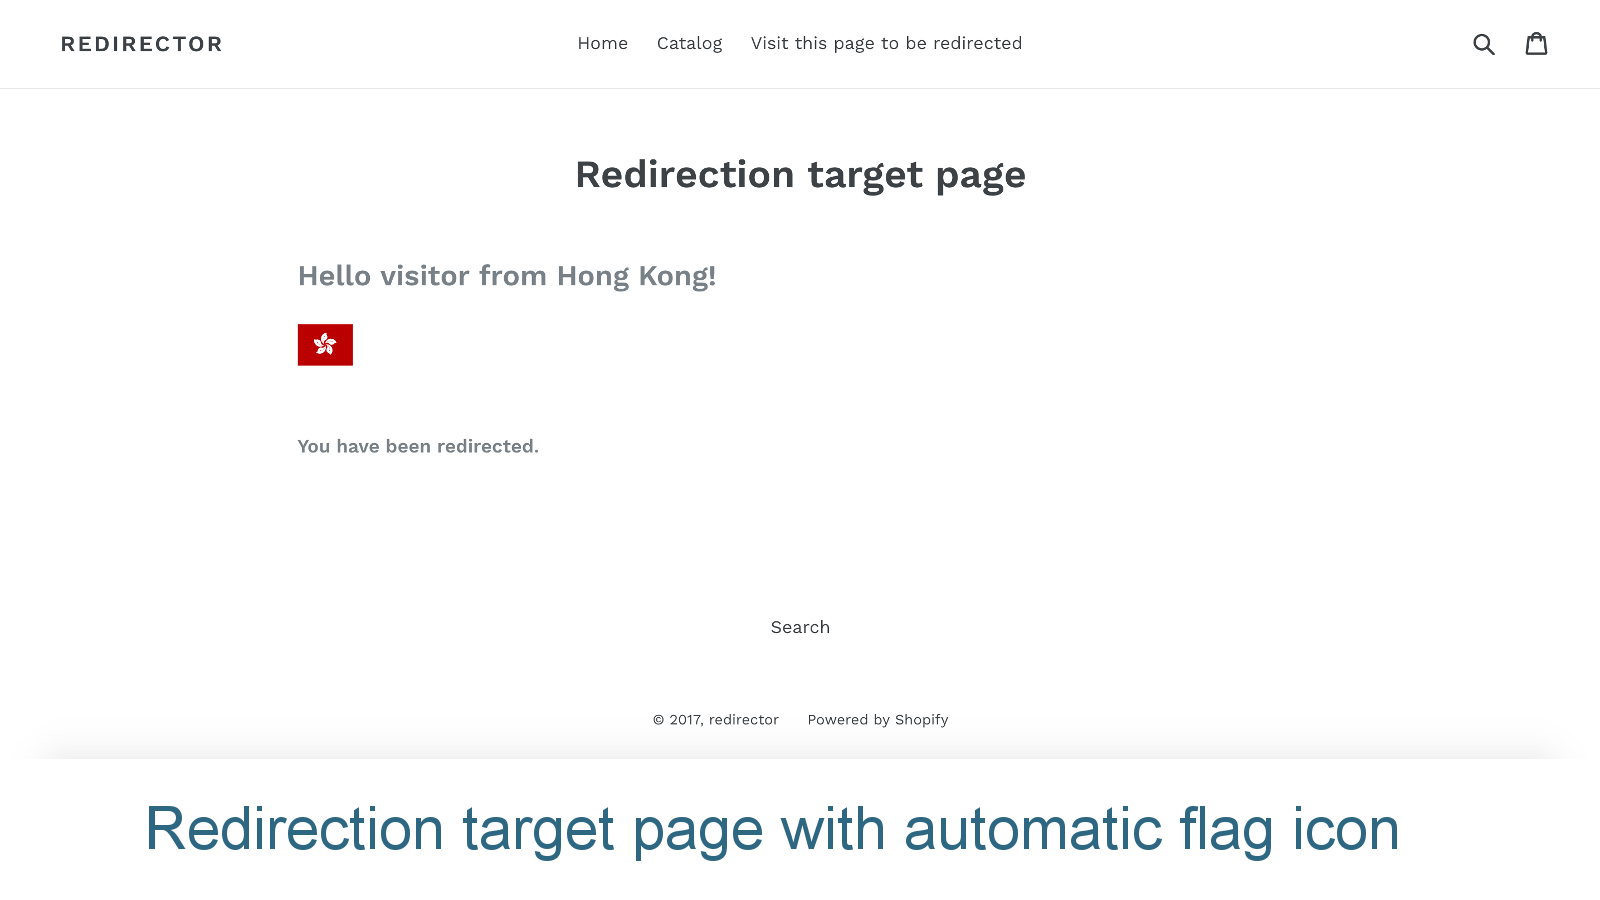 Redirection target page